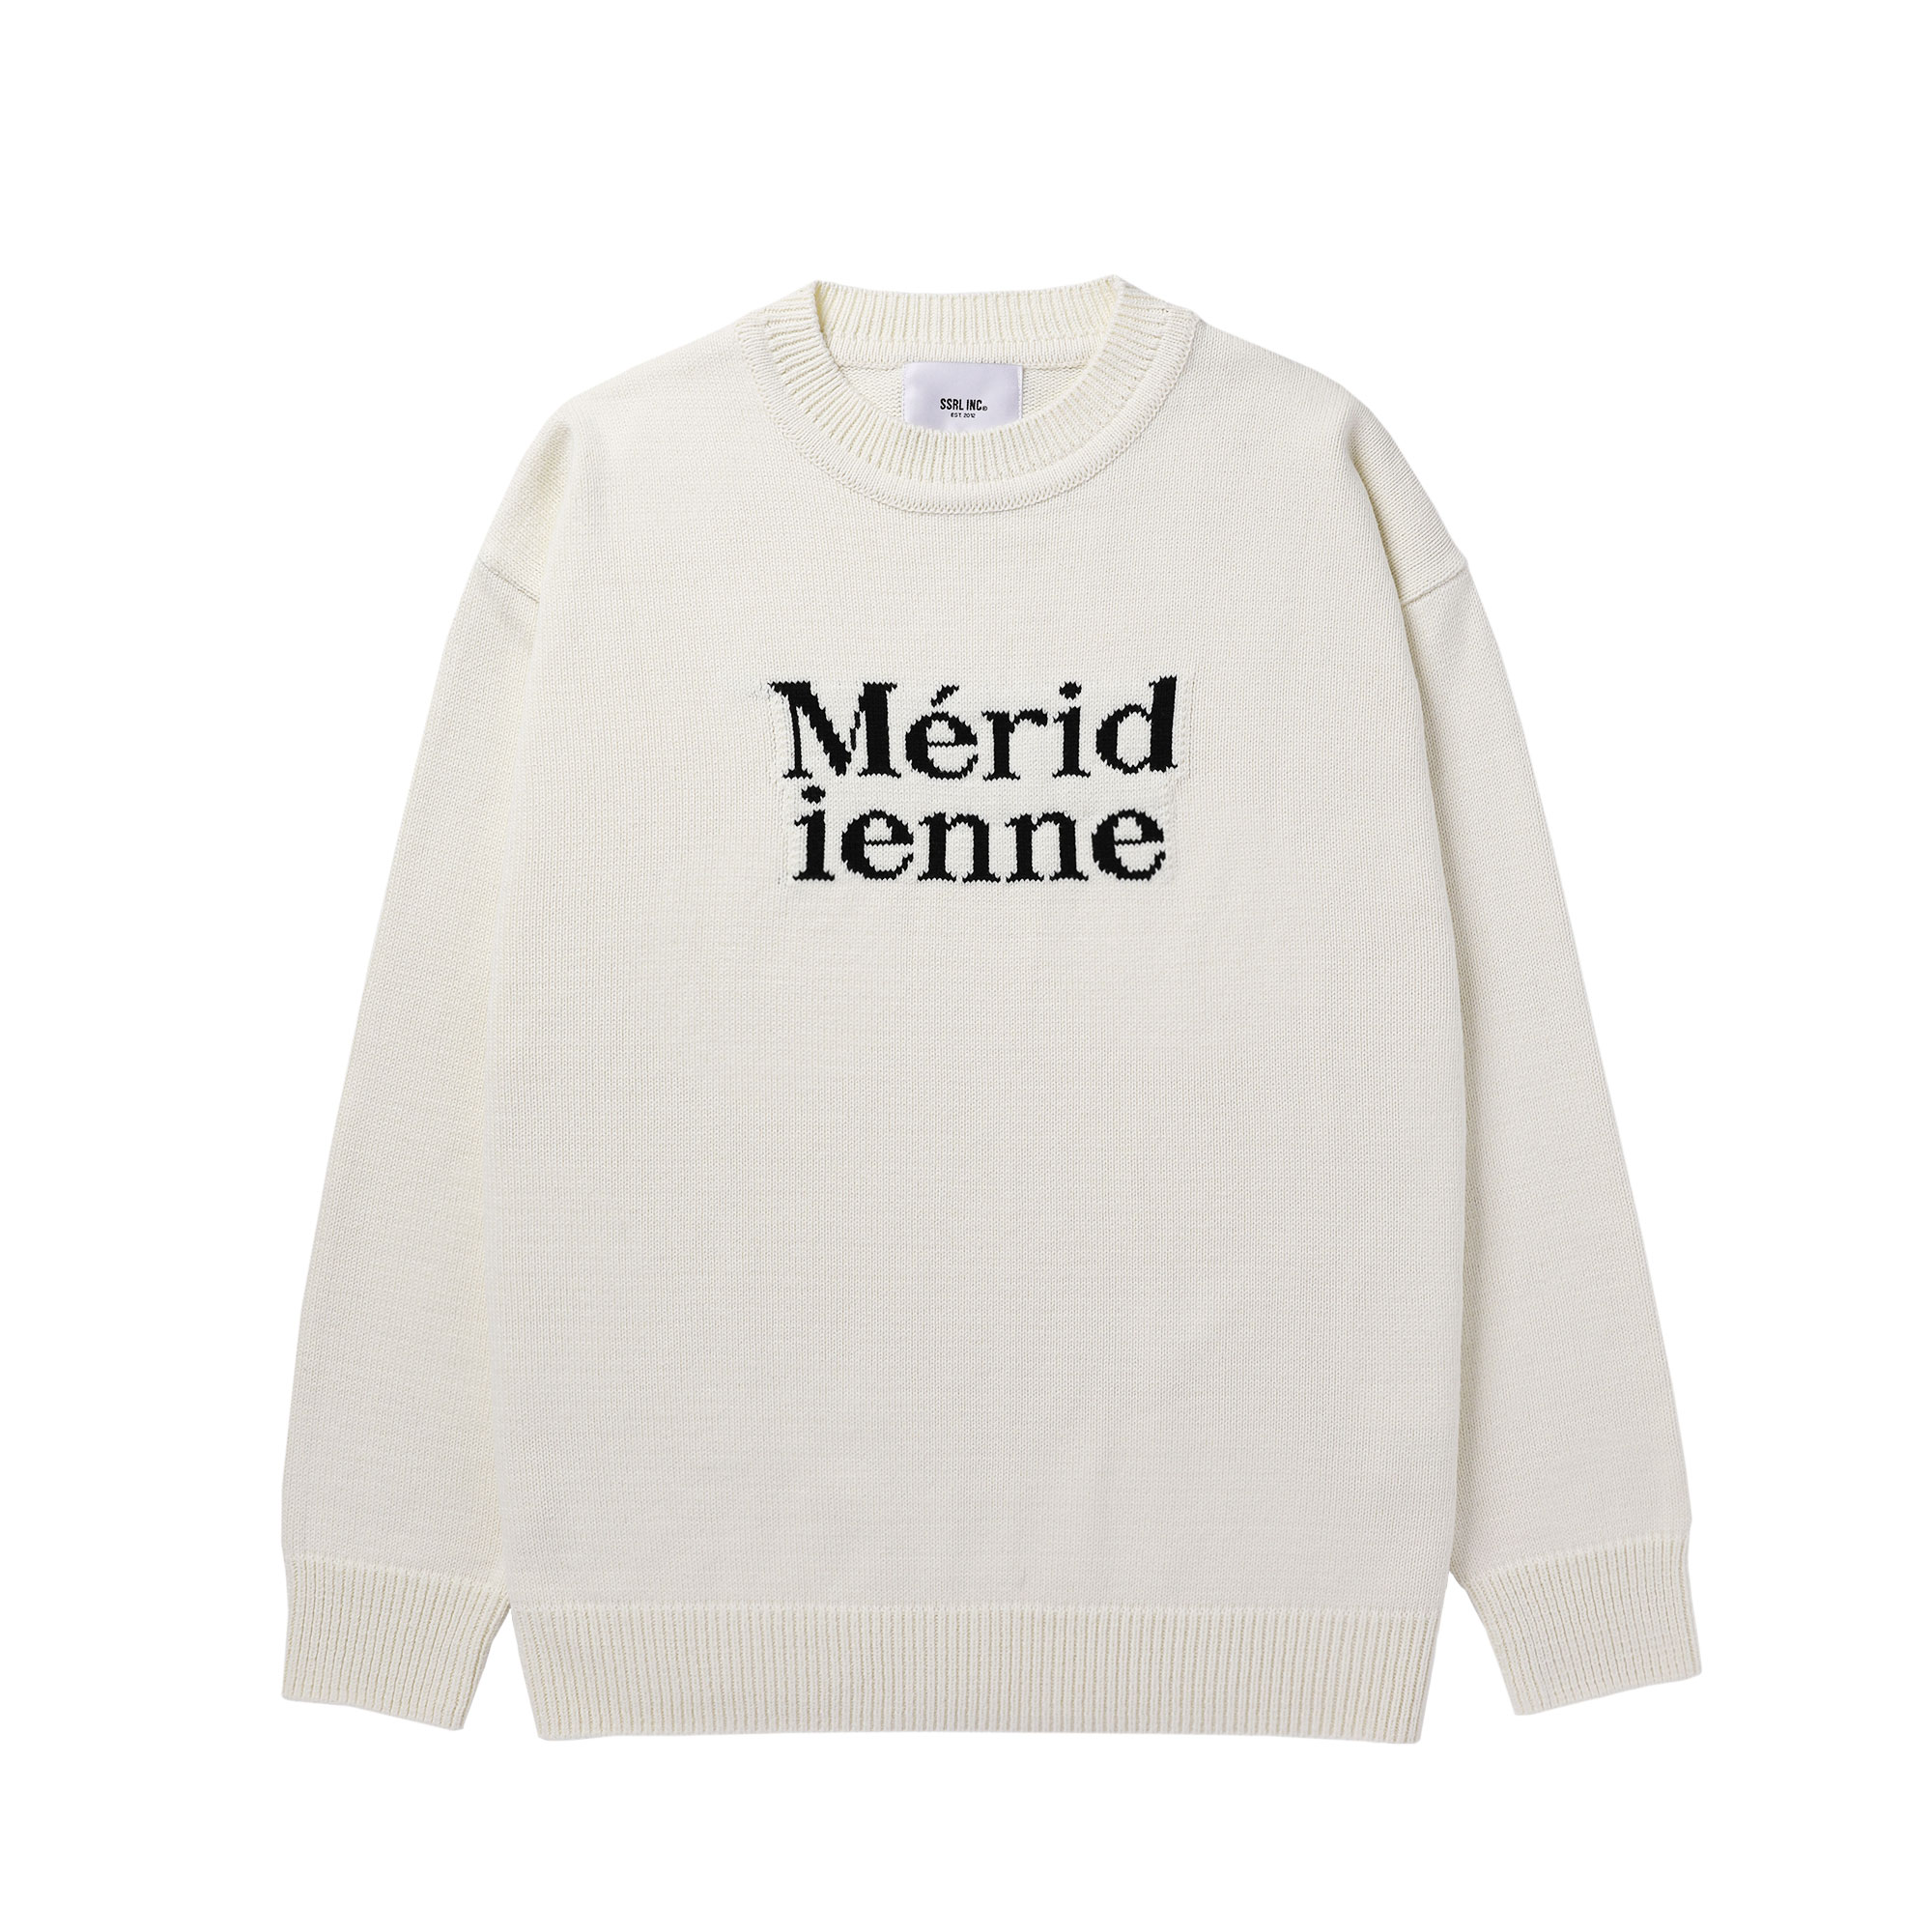 meridienne crew neck knit / ivory